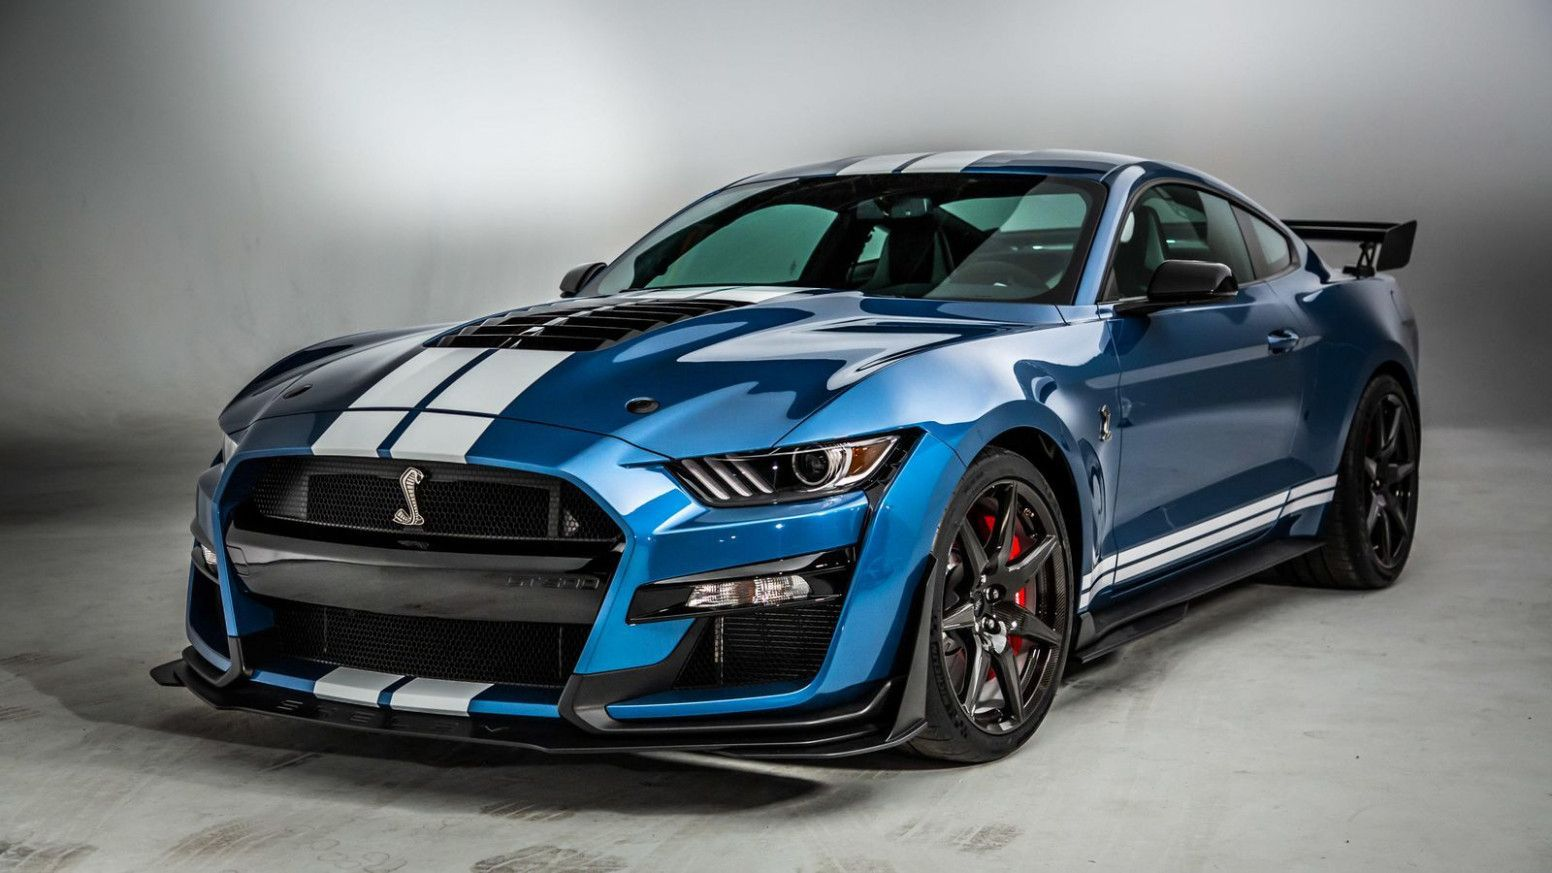 2020 Mustang Gt500 Price And Review In 2020 Shelby Mustang Gt500 Ford Mustang Gt500 Mustang Gt500